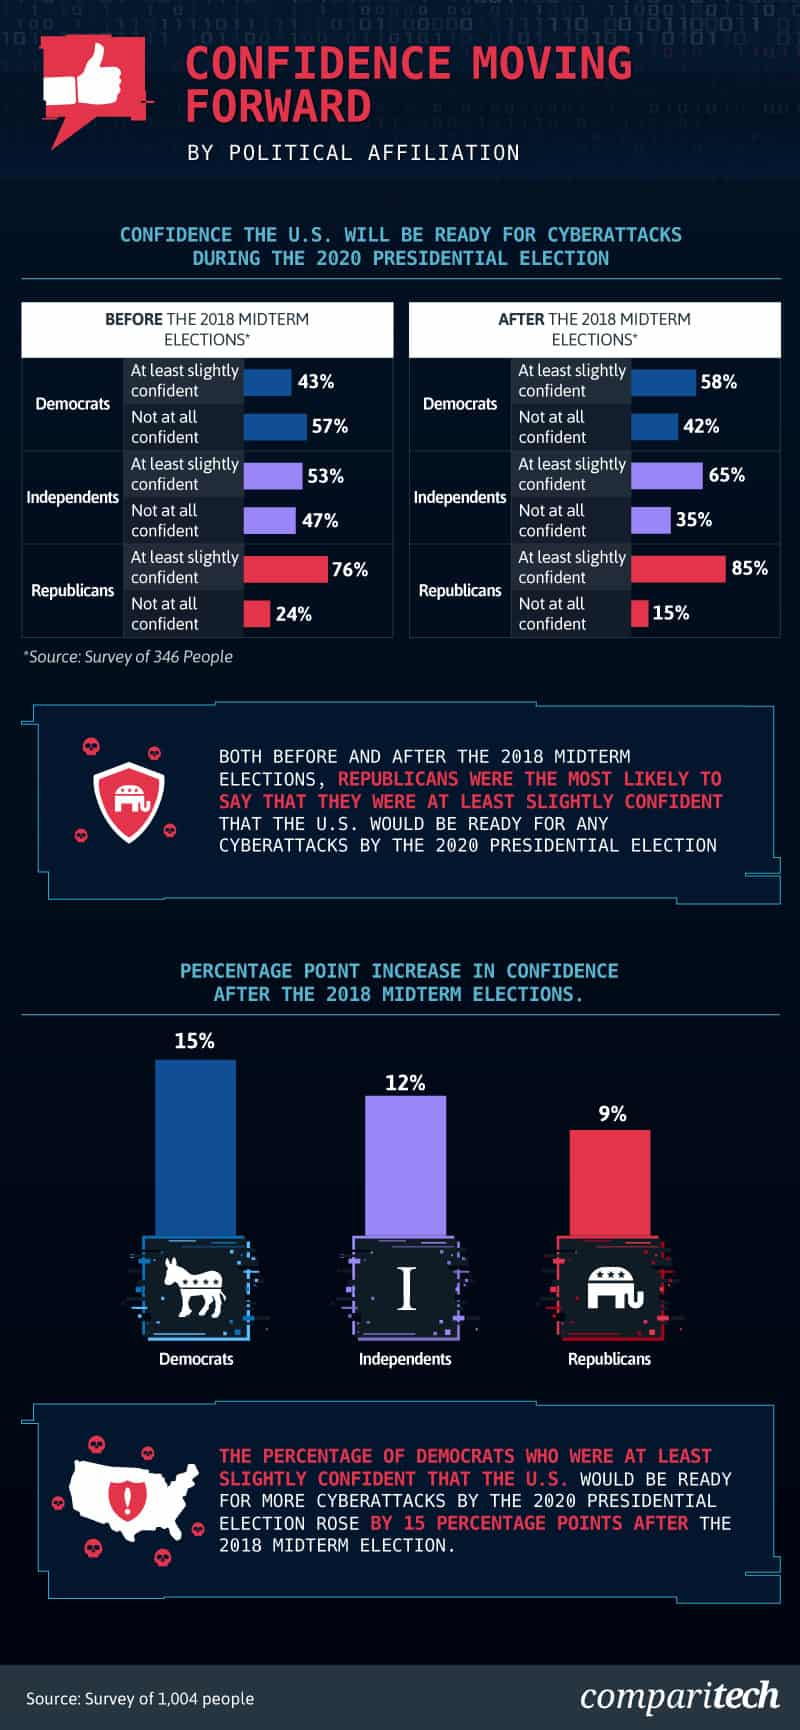 chart-showing-confidence-that-the-us-will-be-ready-for-election-cyberattacks-in-2020-before-and-after-the-2018-midterm-election